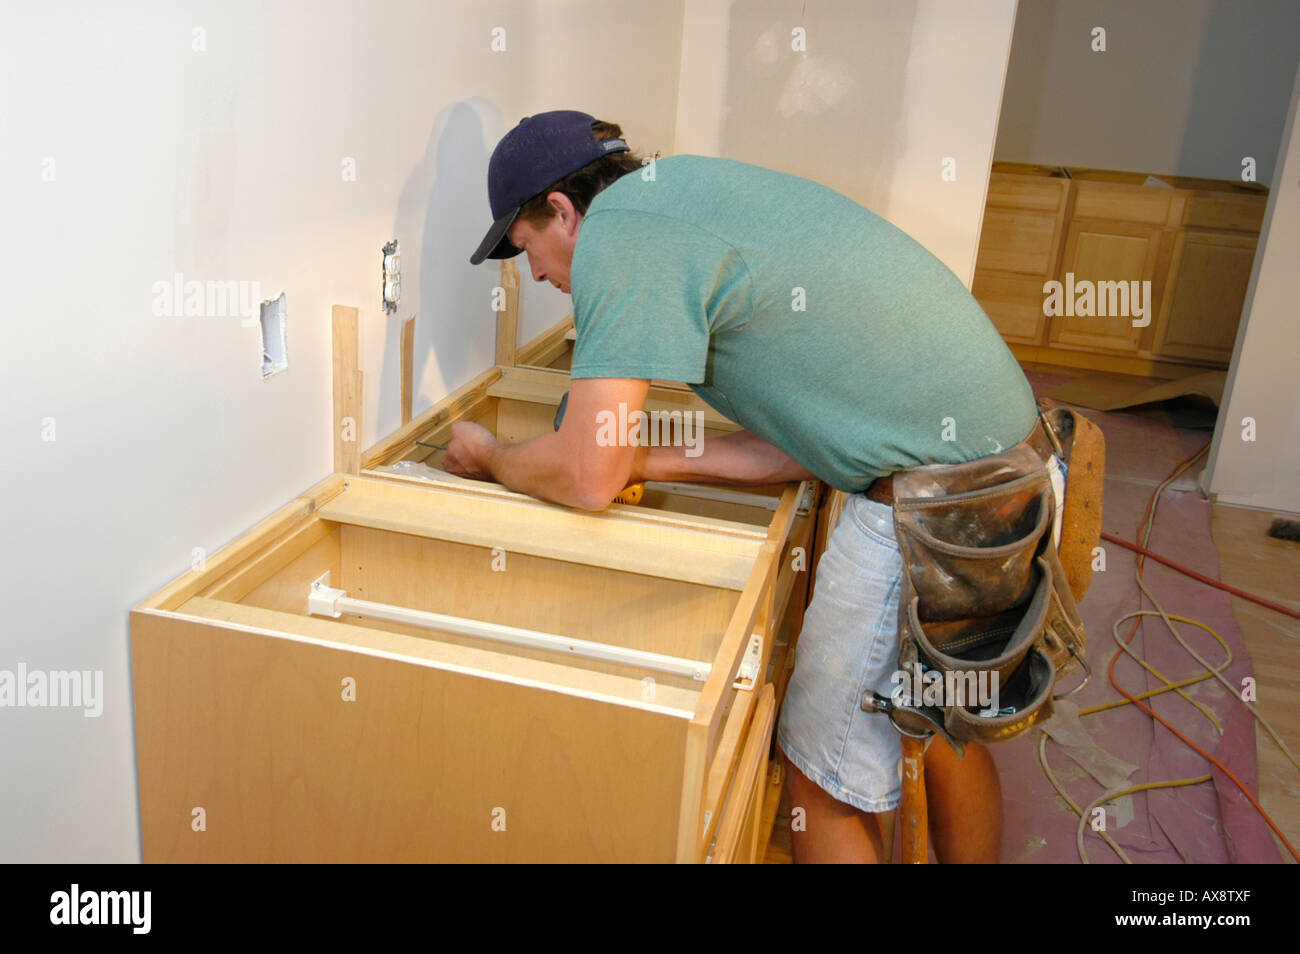 Install Kitchen Cabinets High Resolution Stock Photography And Images Alamy